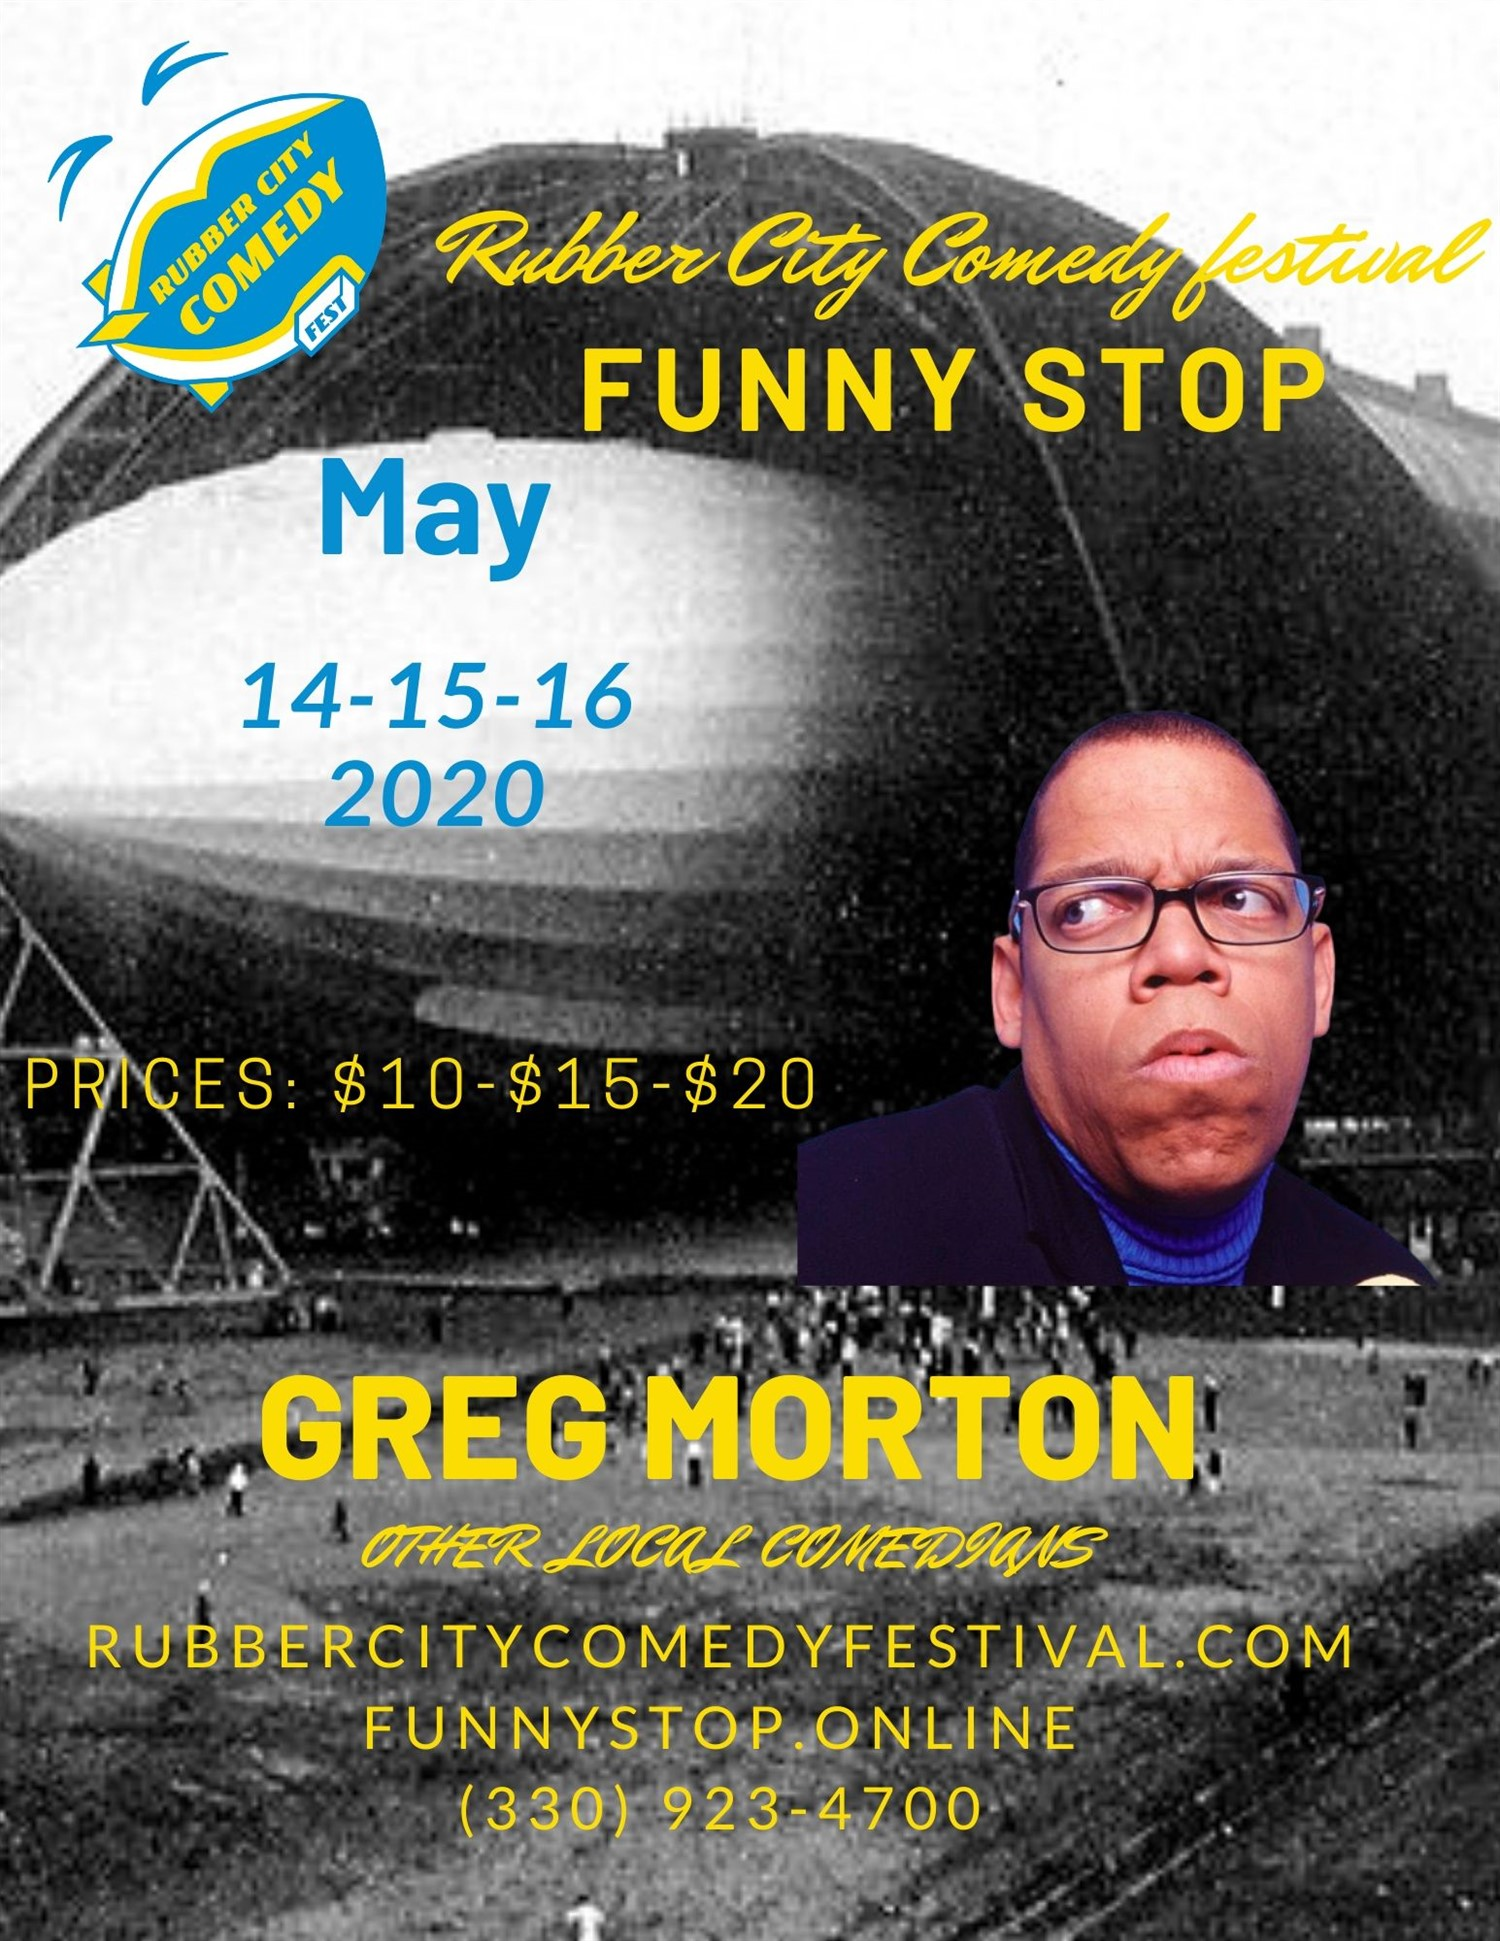 Rubber City Comedy Festival Greg Morton Thursday Show on May 14, 20:00@Funny Stop Comedy Club - Buy tickets and Get information on Funny Stop funnystop.online